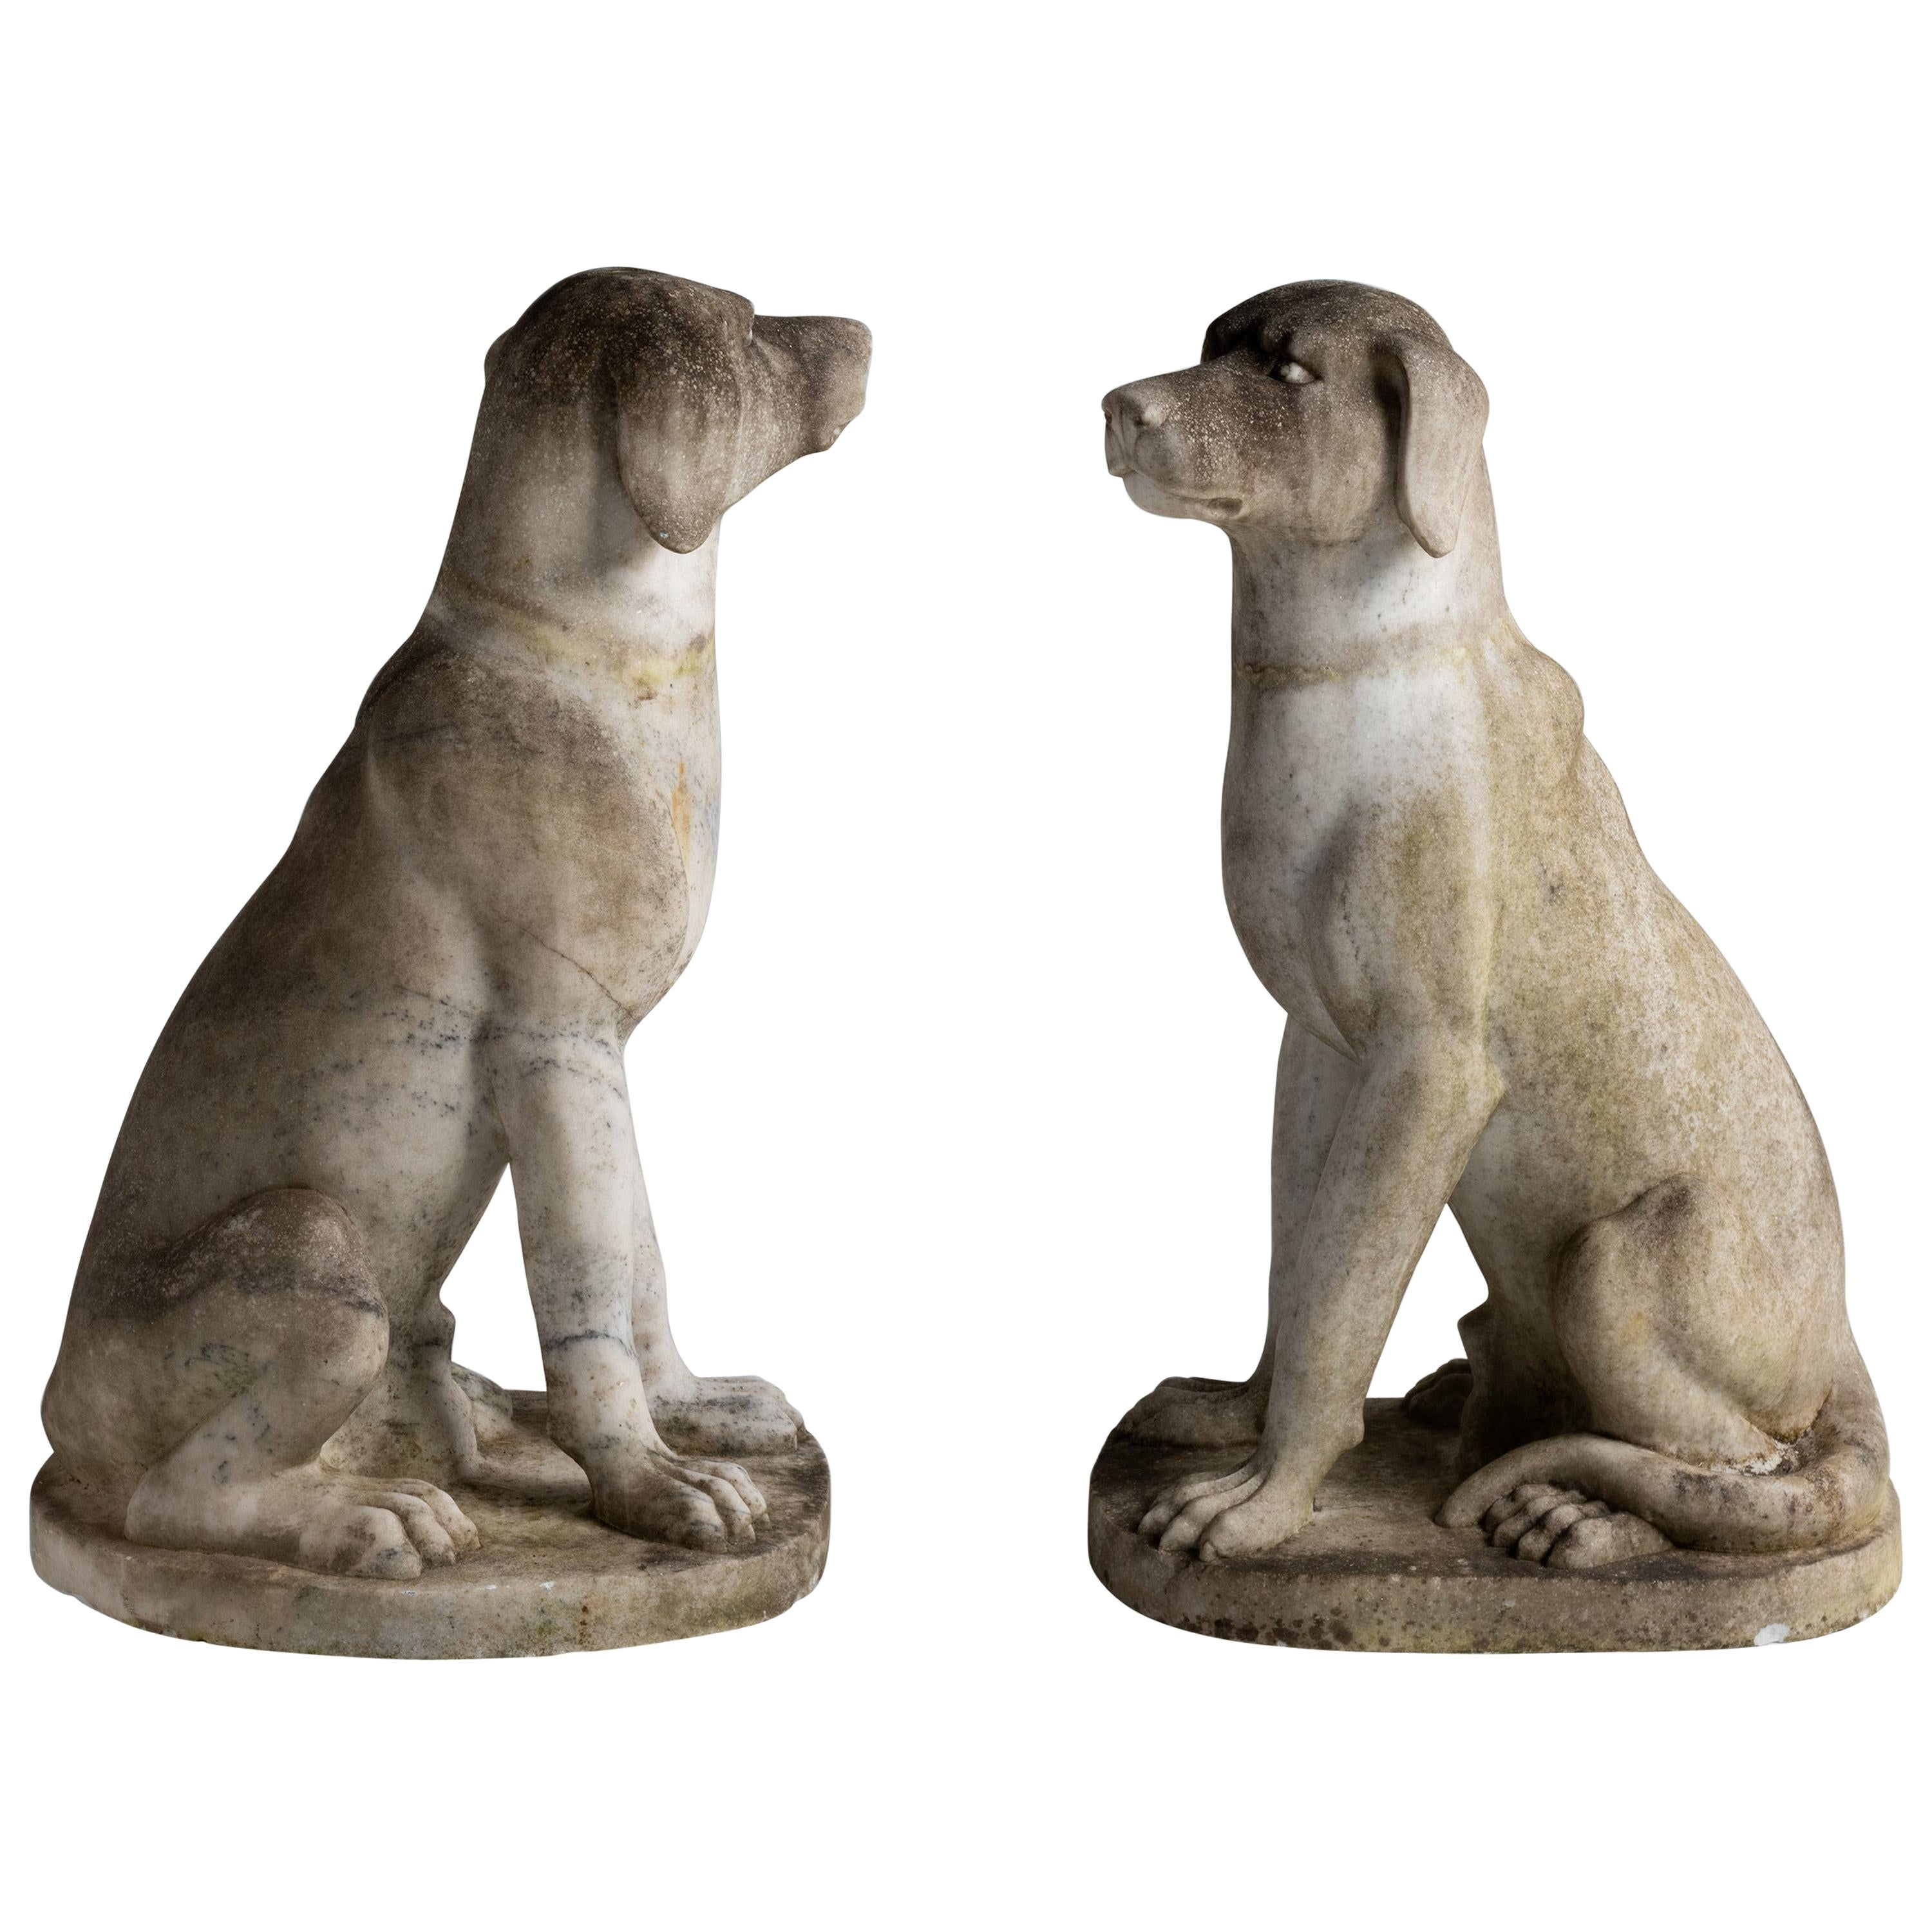 Pensive Dog Statues in Marble